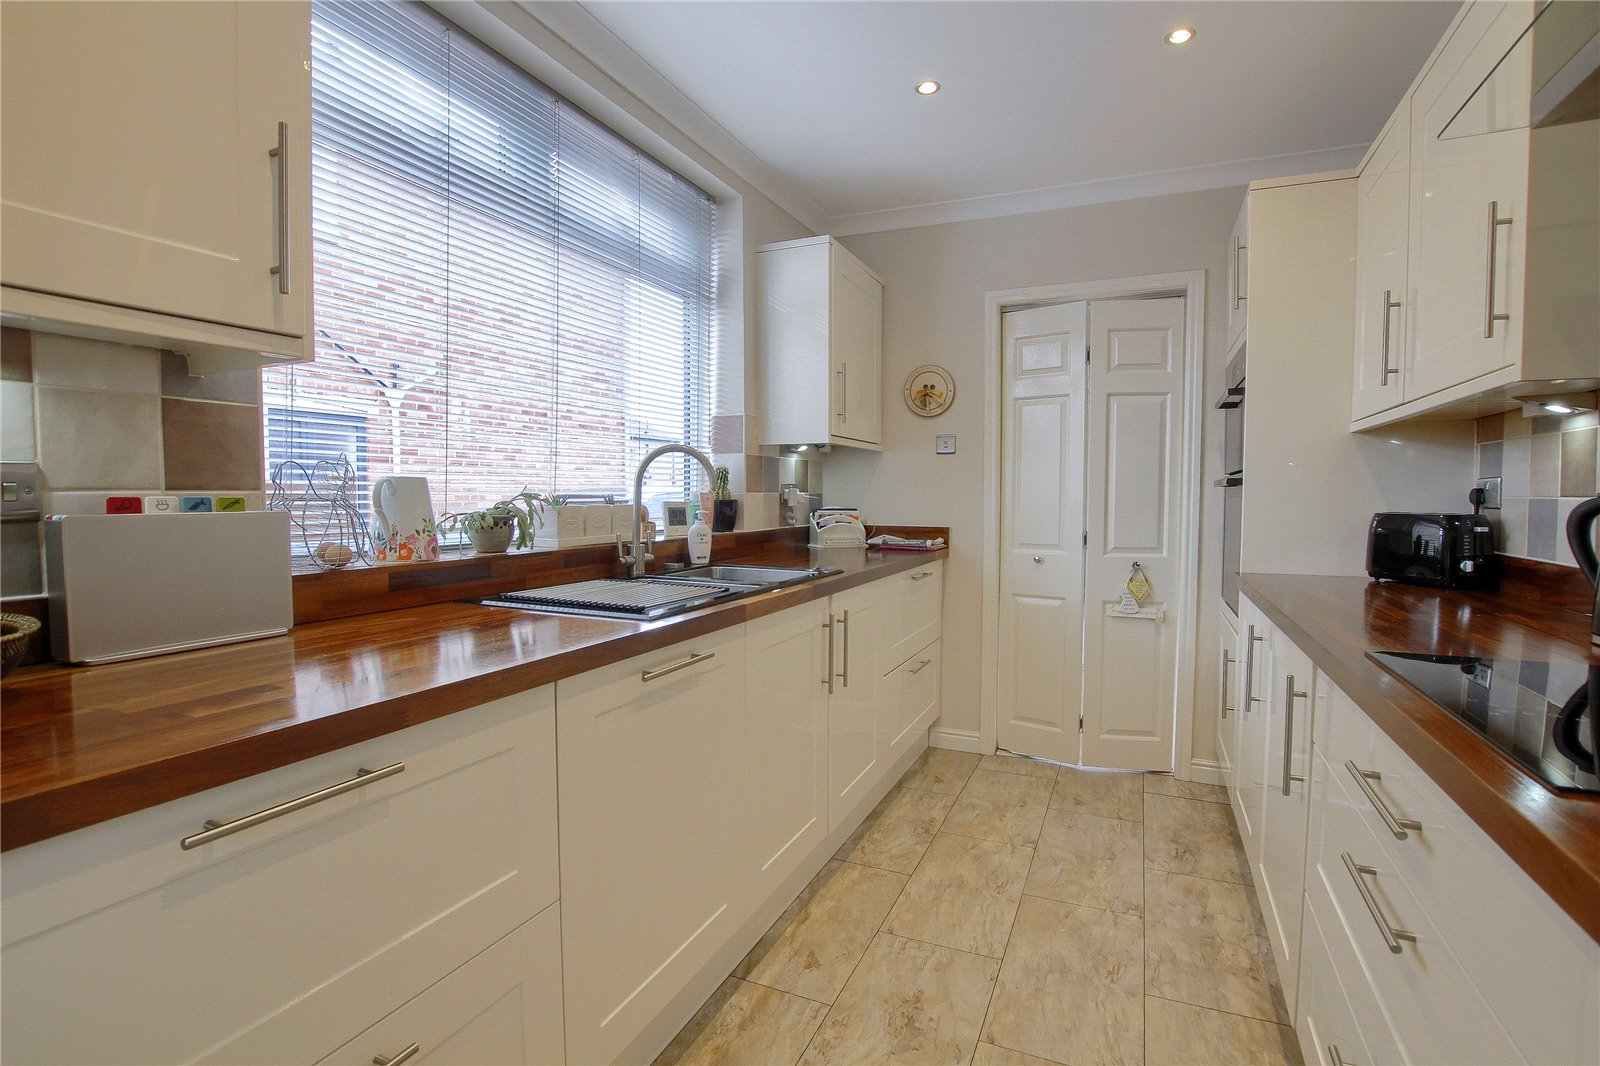 4 bed house for sale in Oldford Crescent, Acklam  - Property Image 17